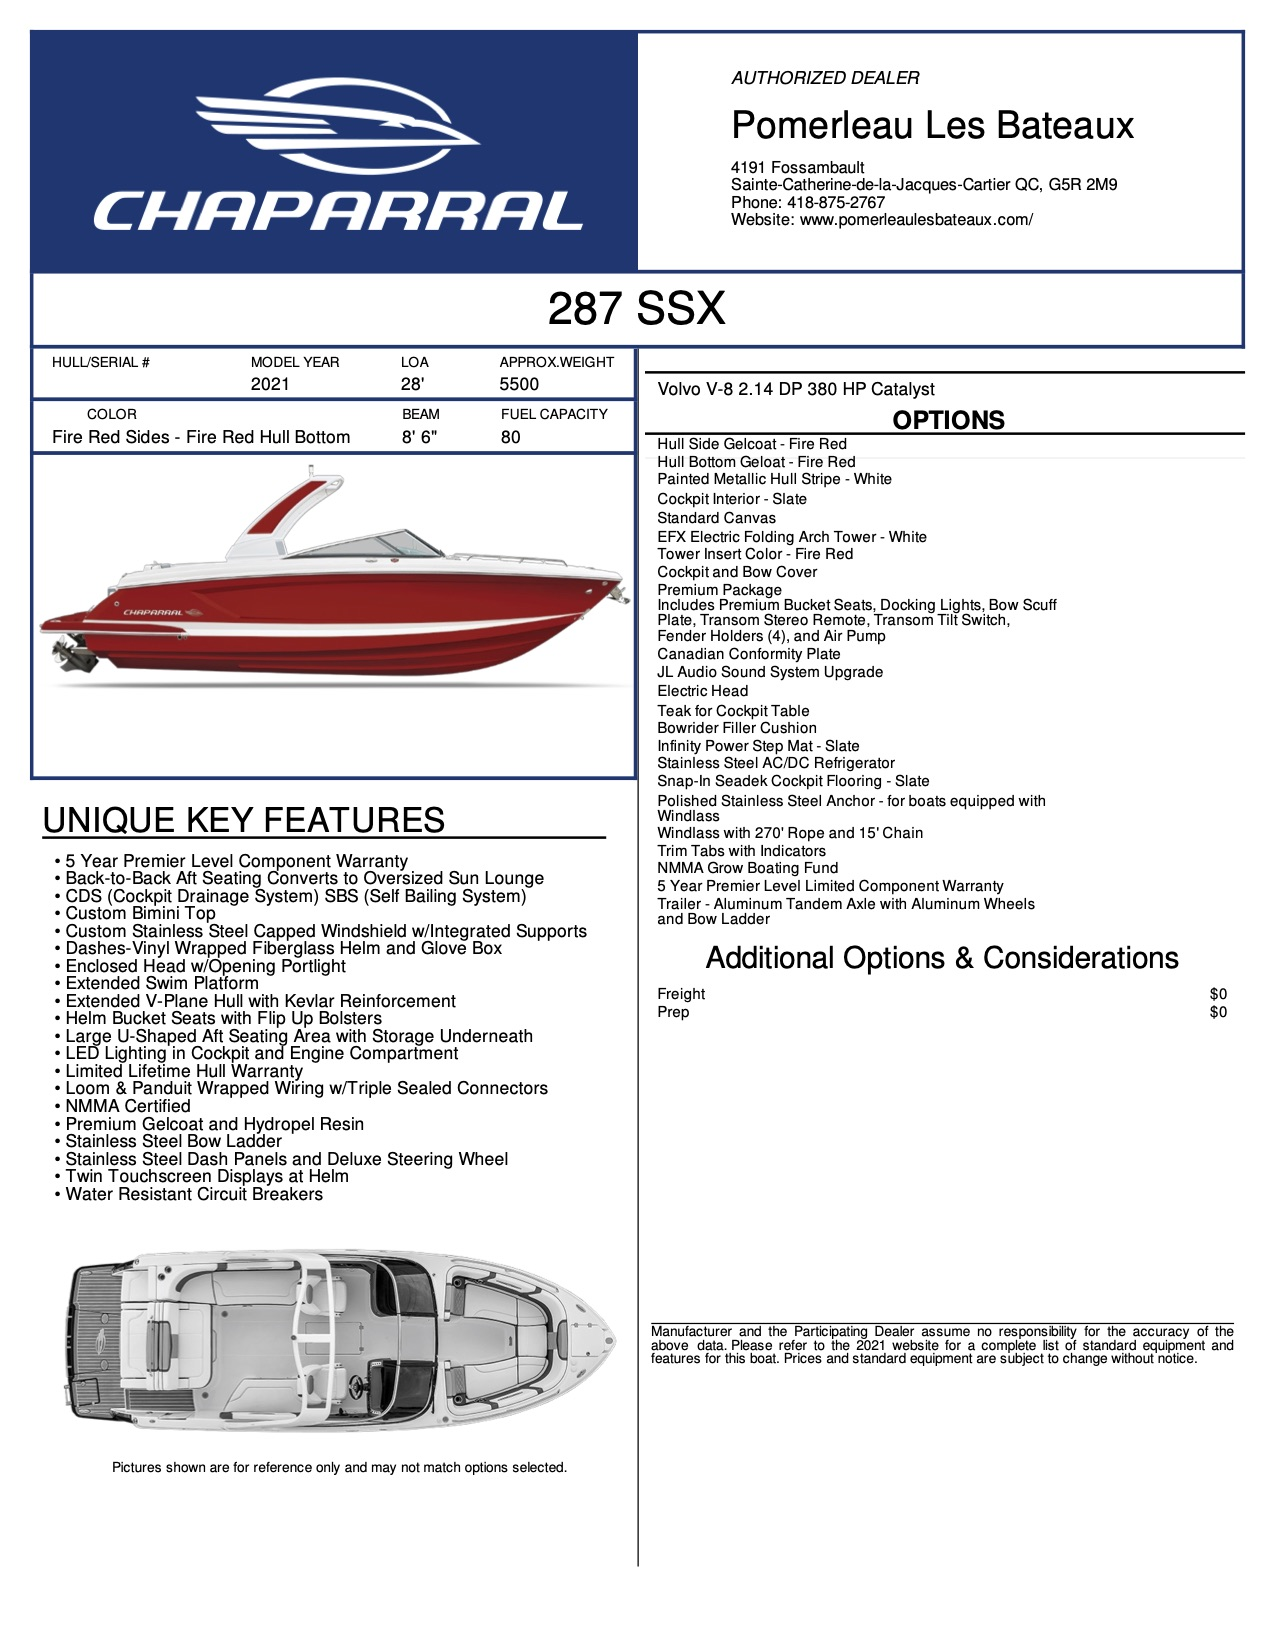 Chaparral 287 SSX - Chaparral-Boats-2021-287--Window-Sticker-301936